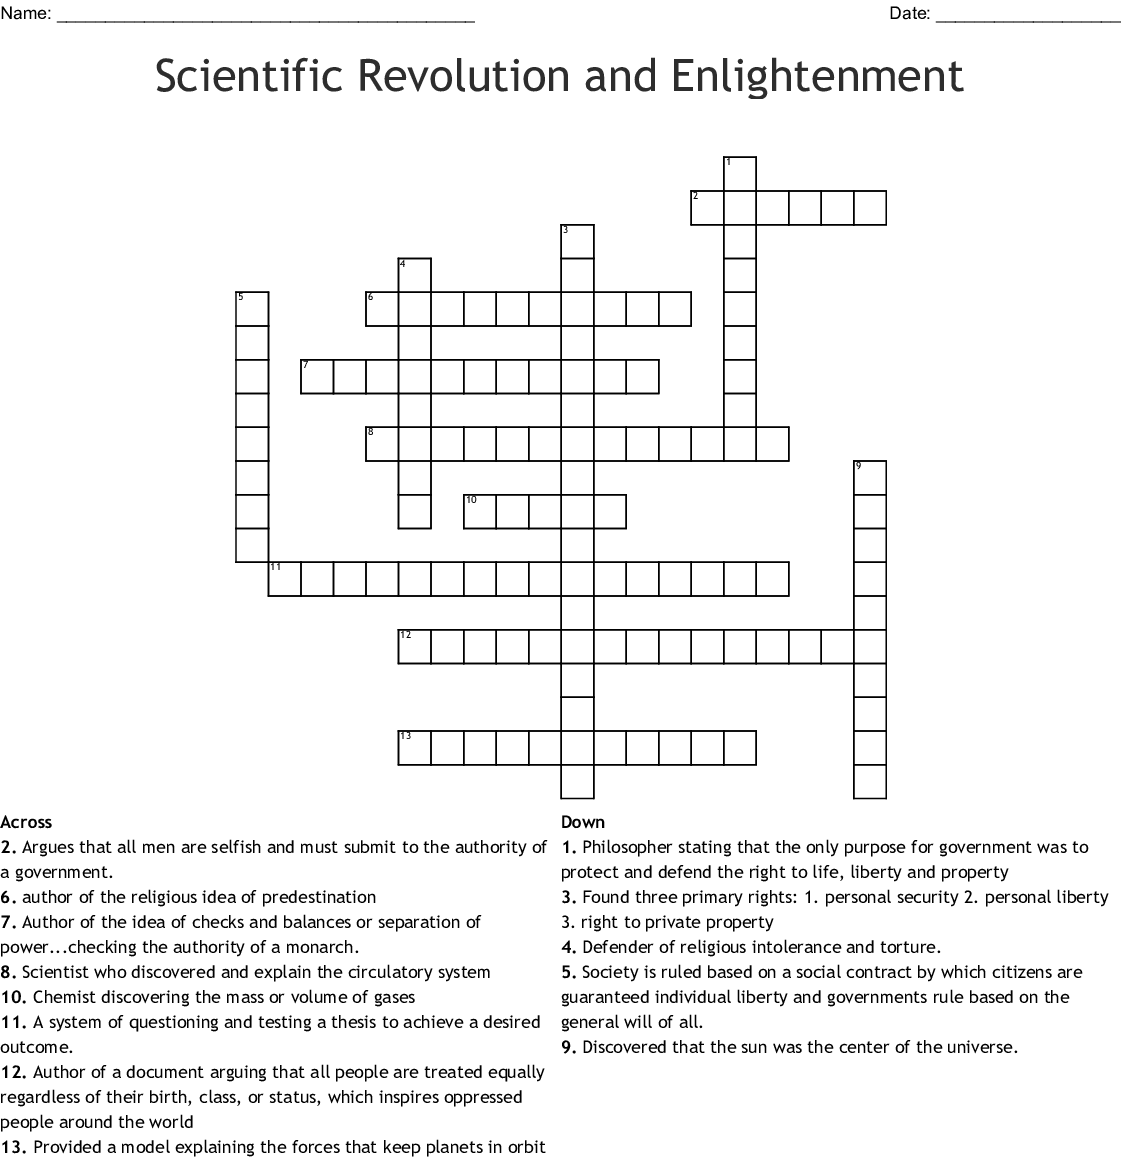 Scientific Revolution And Enlightenment Crossword Wordmint